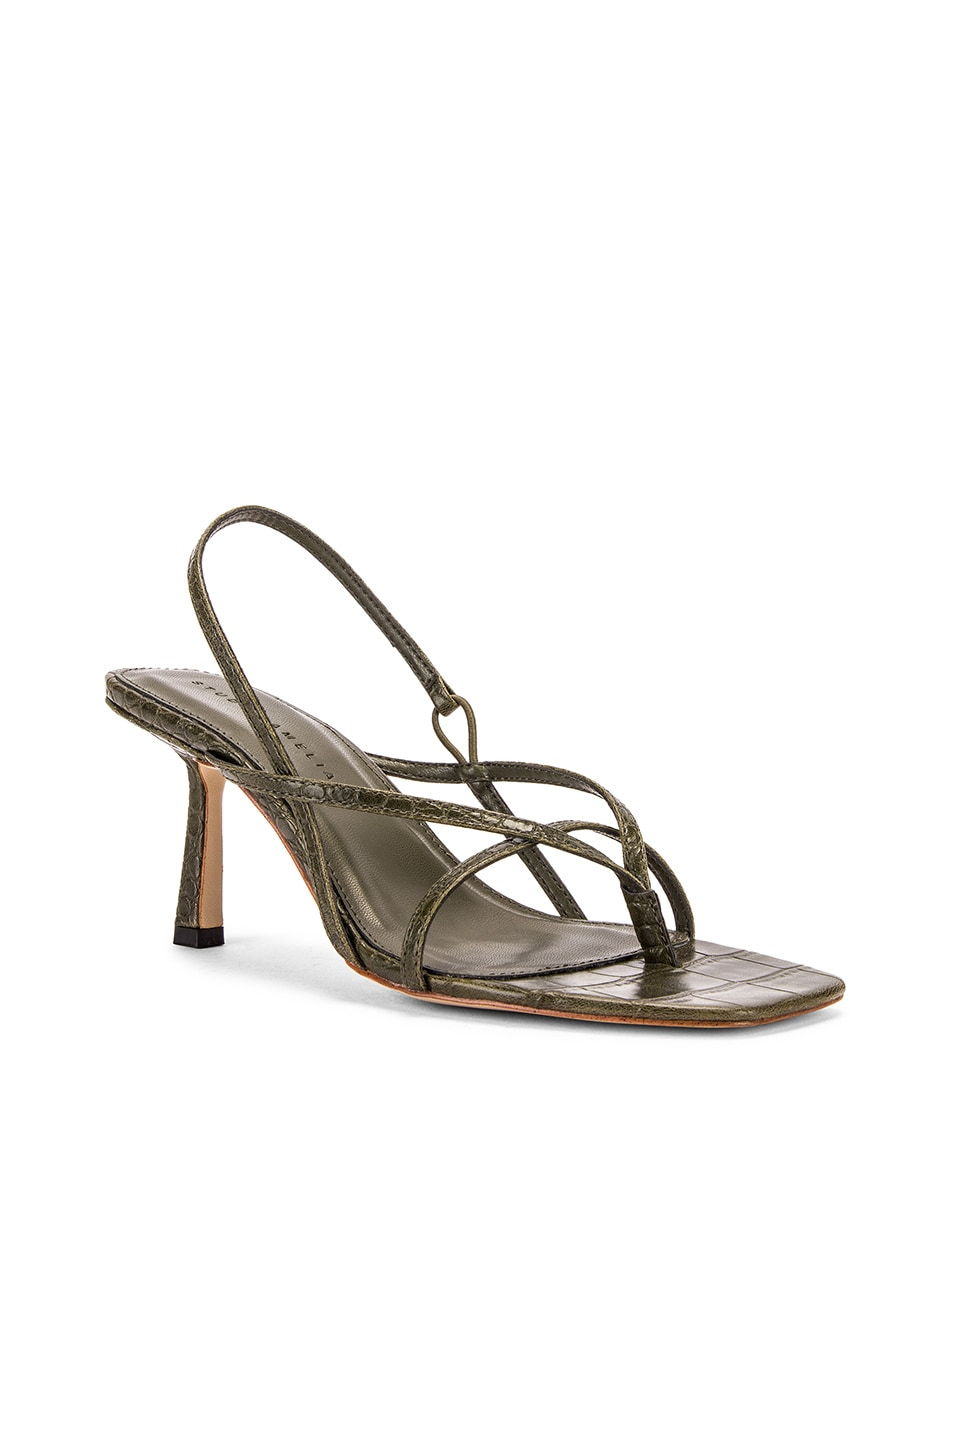 Image 2 of Studio Amelia Vegan 2.4 Flip Flop Heel in Olive Croc Leather